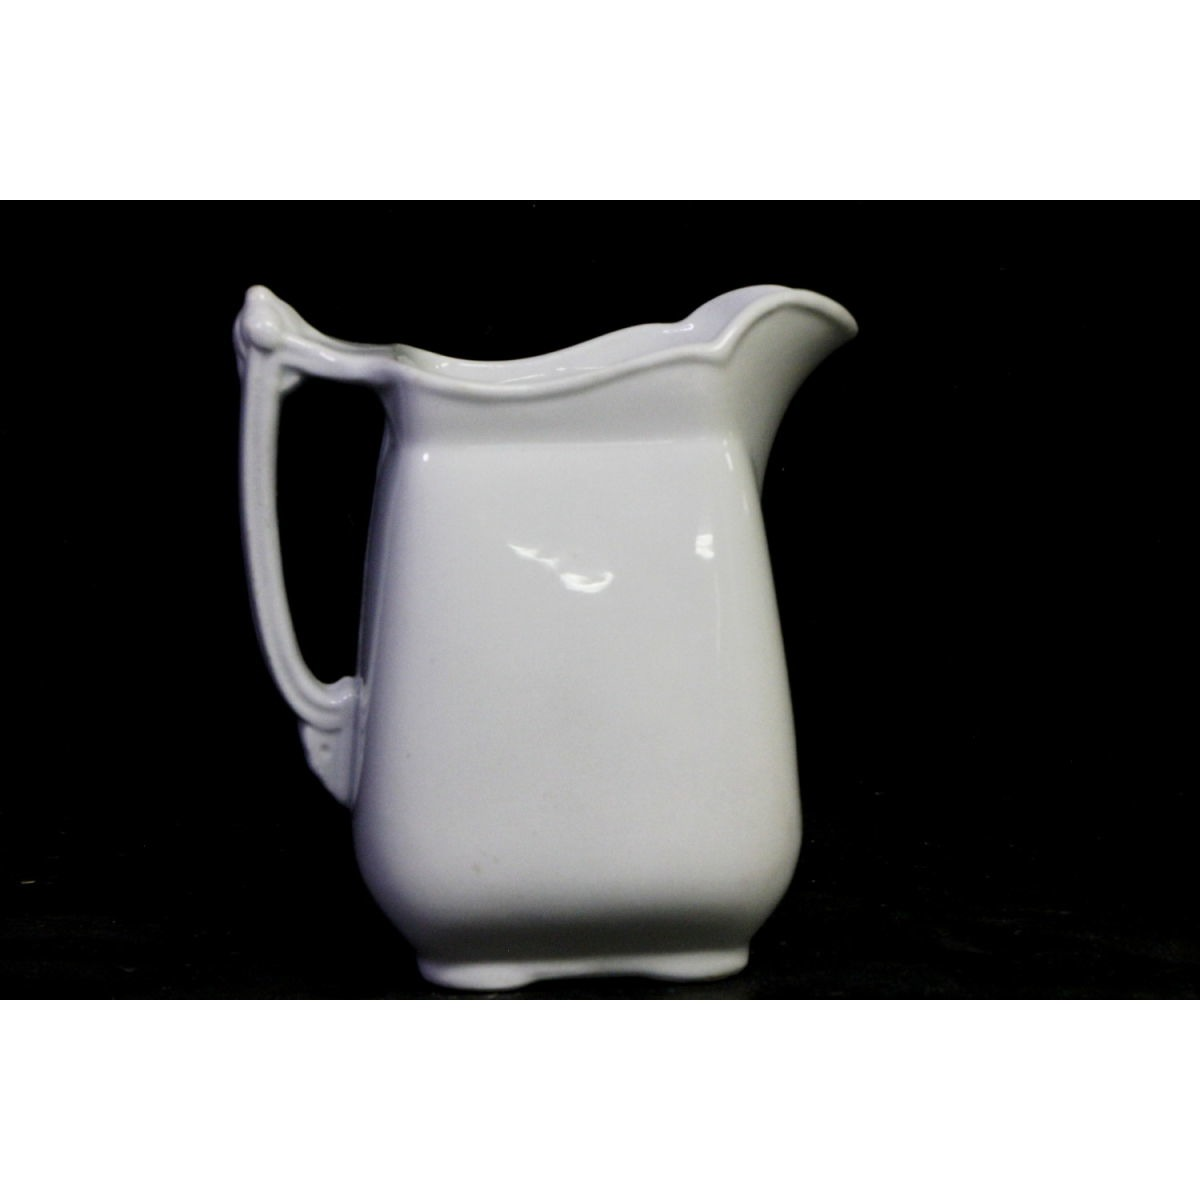 Completely Plain Square Ironstone Creamer - Meakin